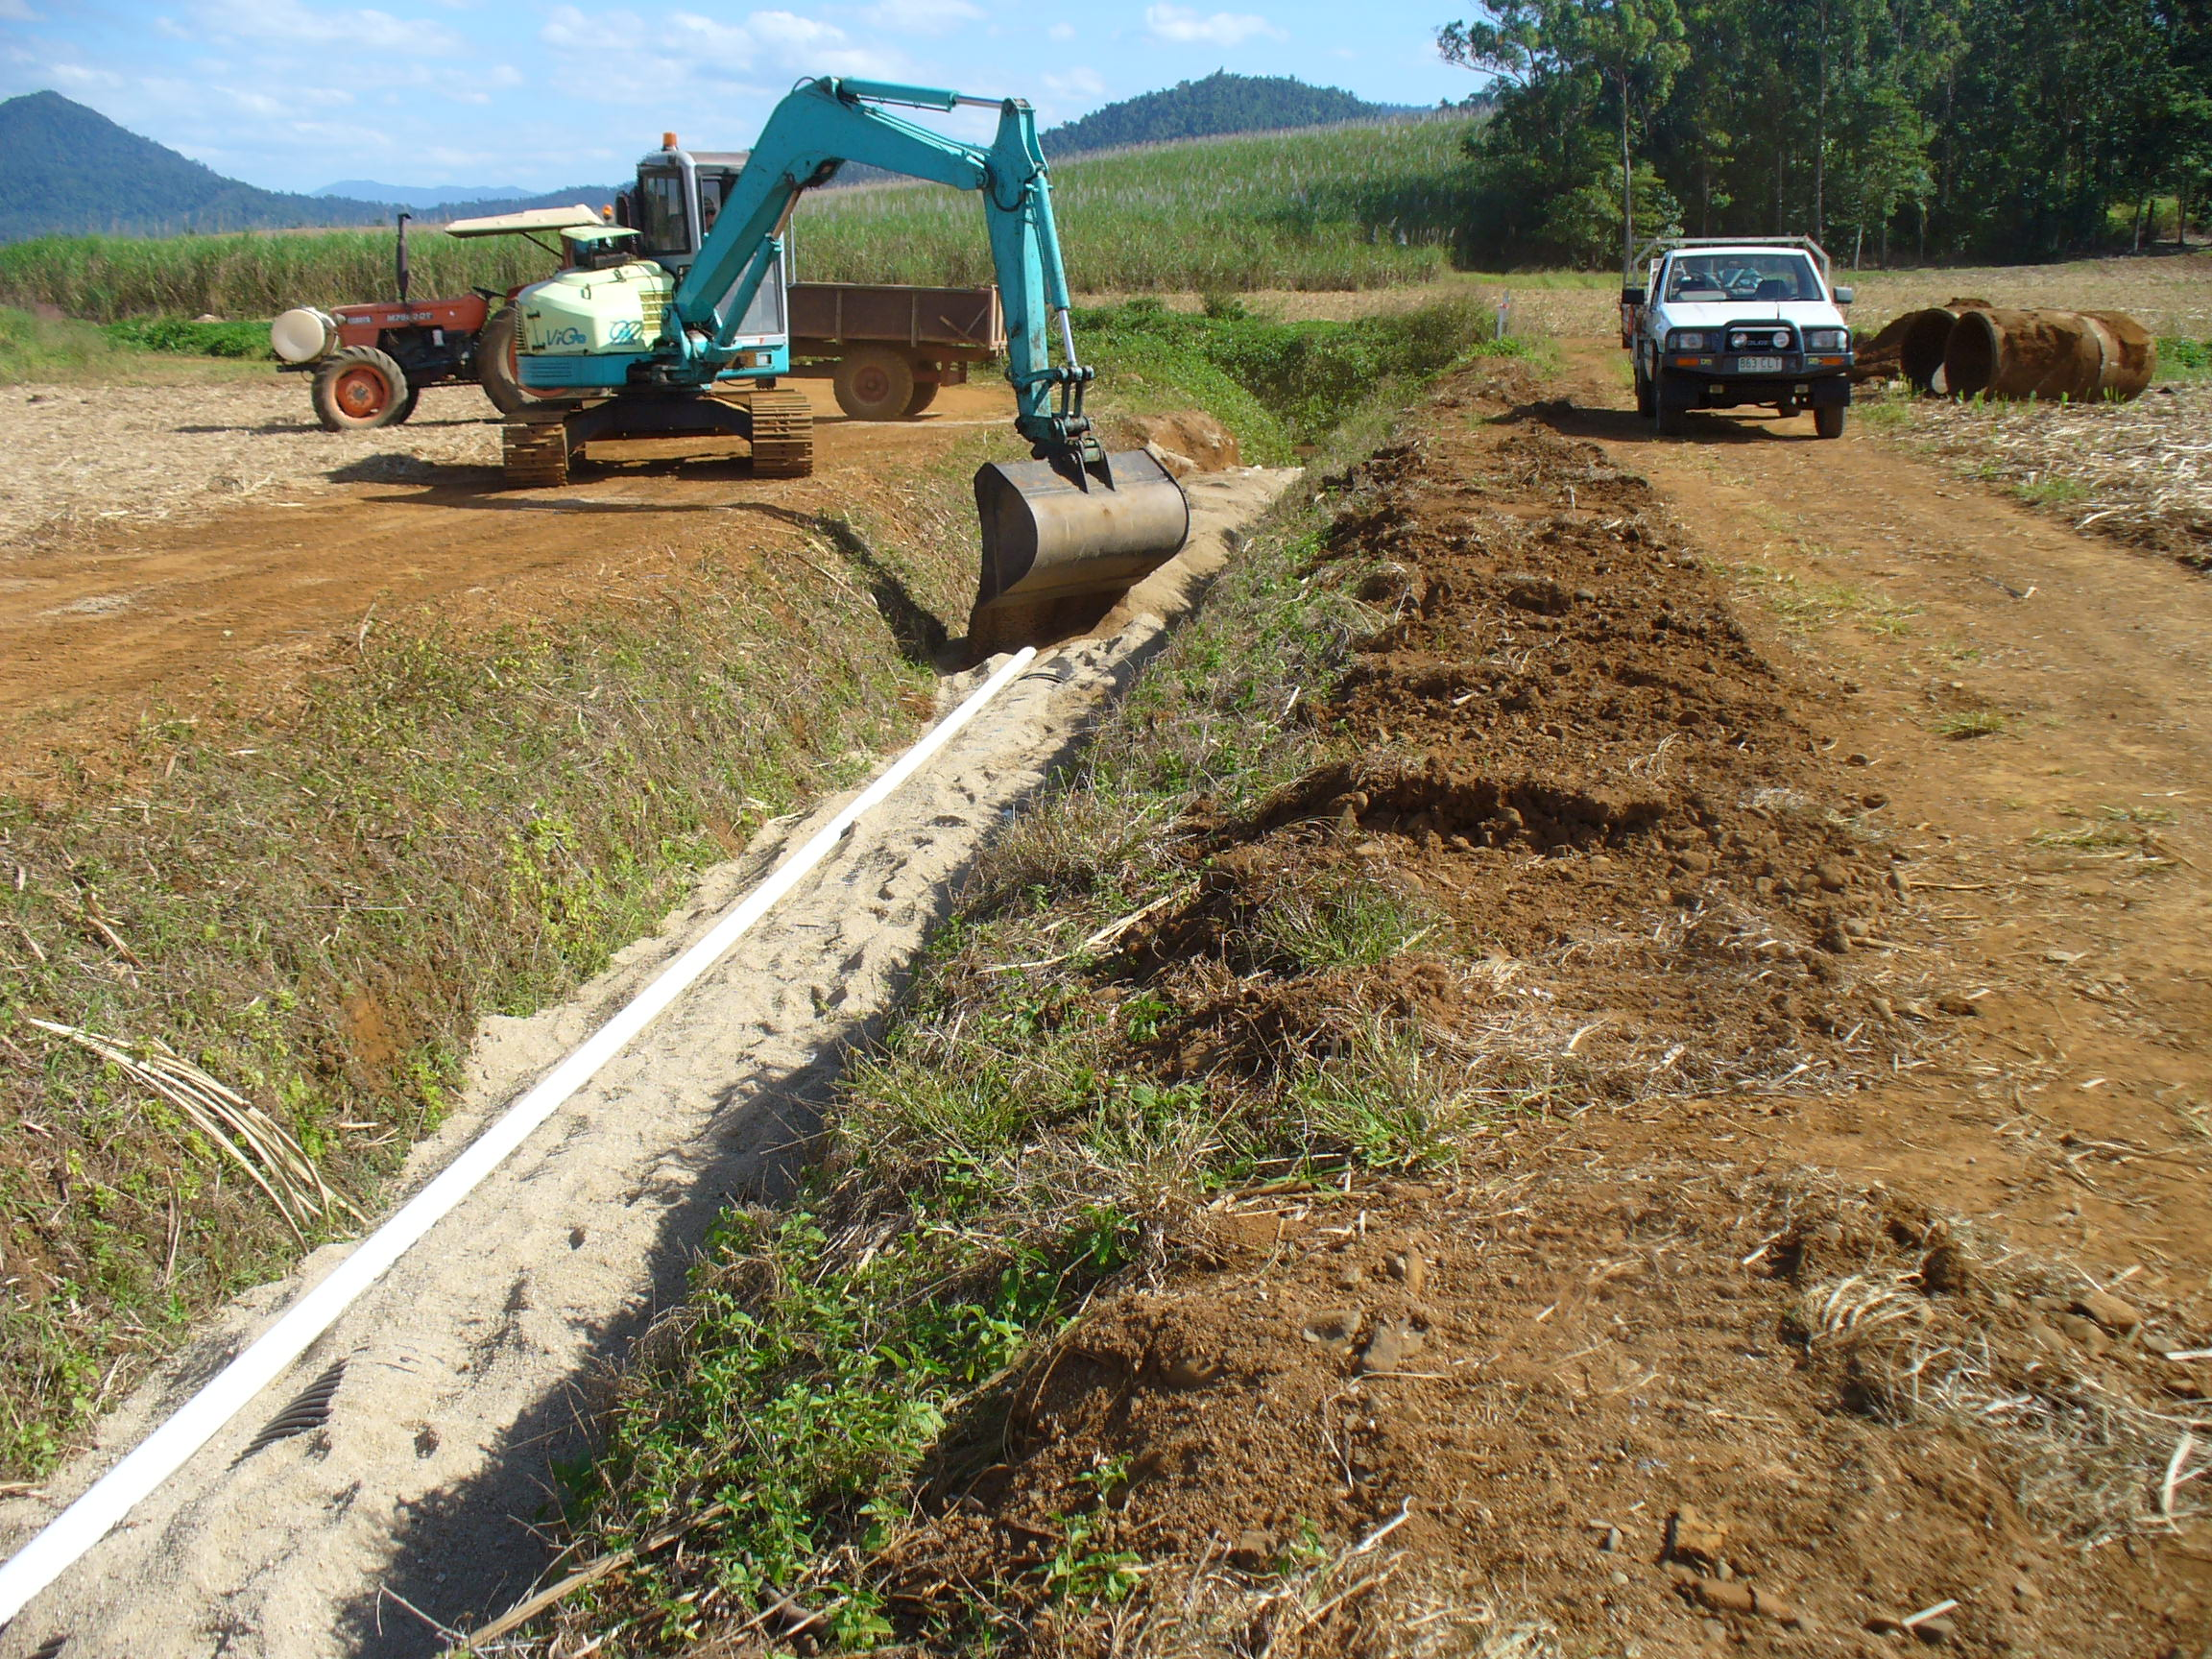 Building the drainage channel took a considerable amount of time and resources